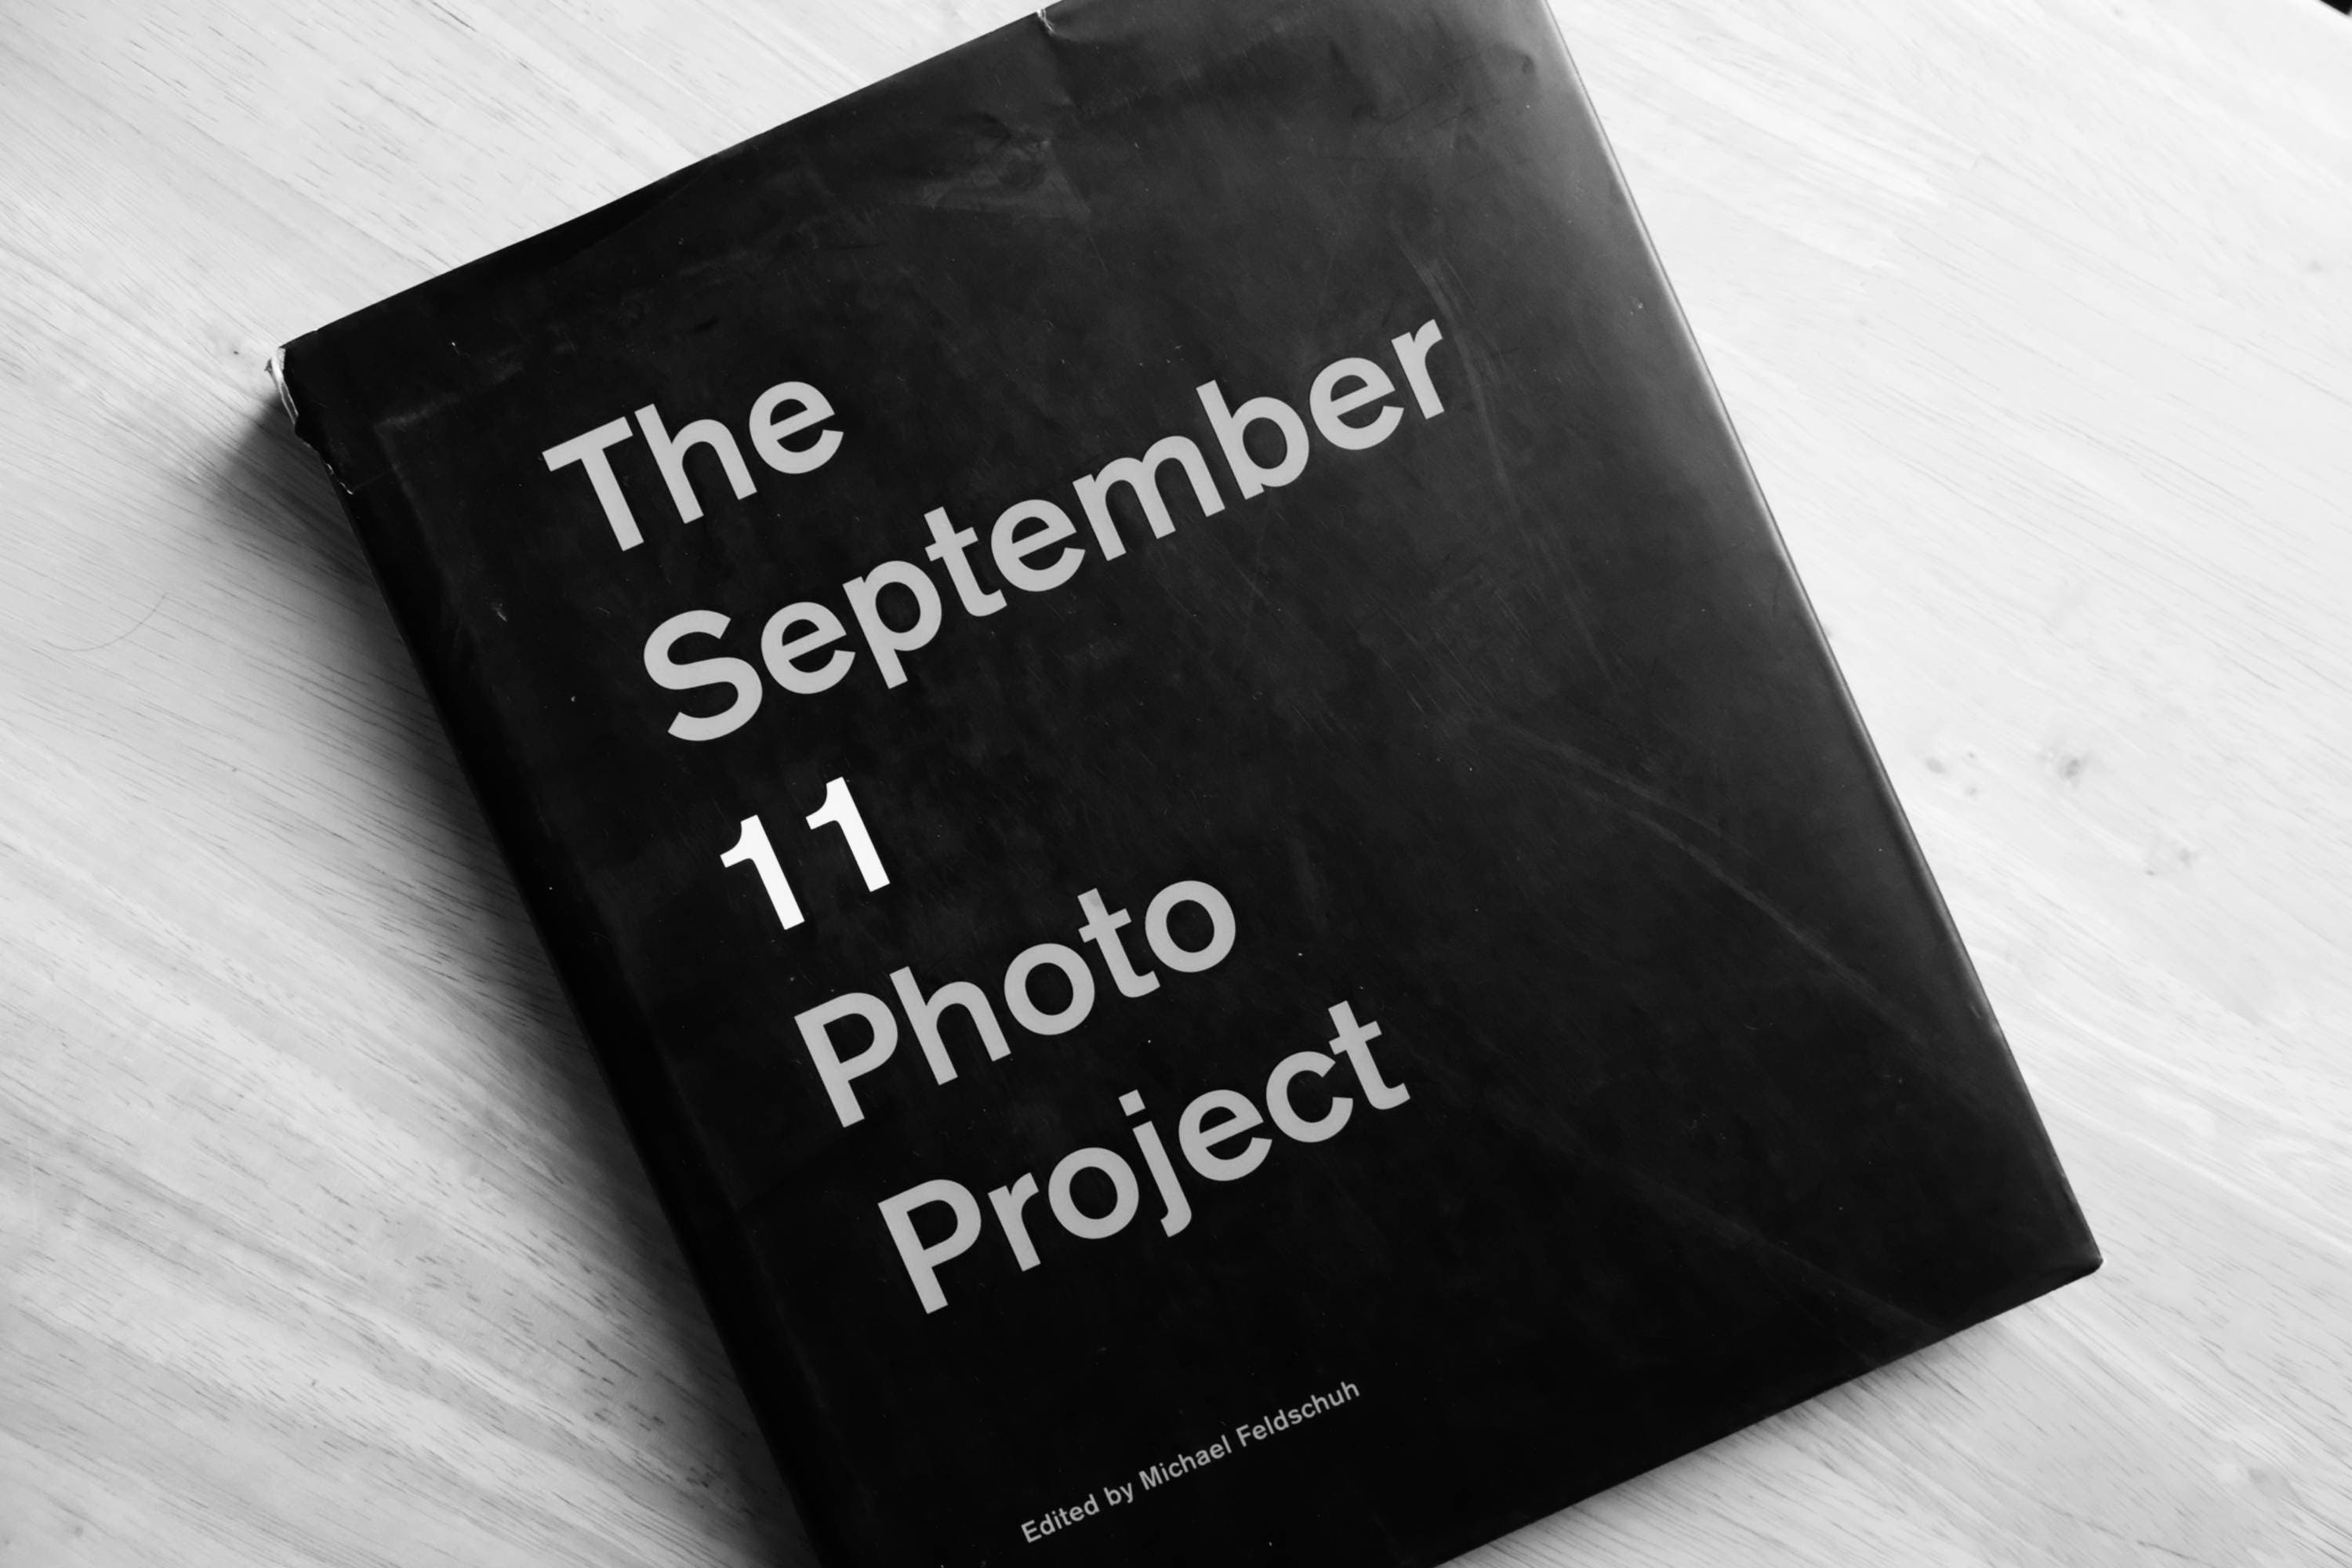 The September 11 Photo Project: A Reminder of Photography's Importance